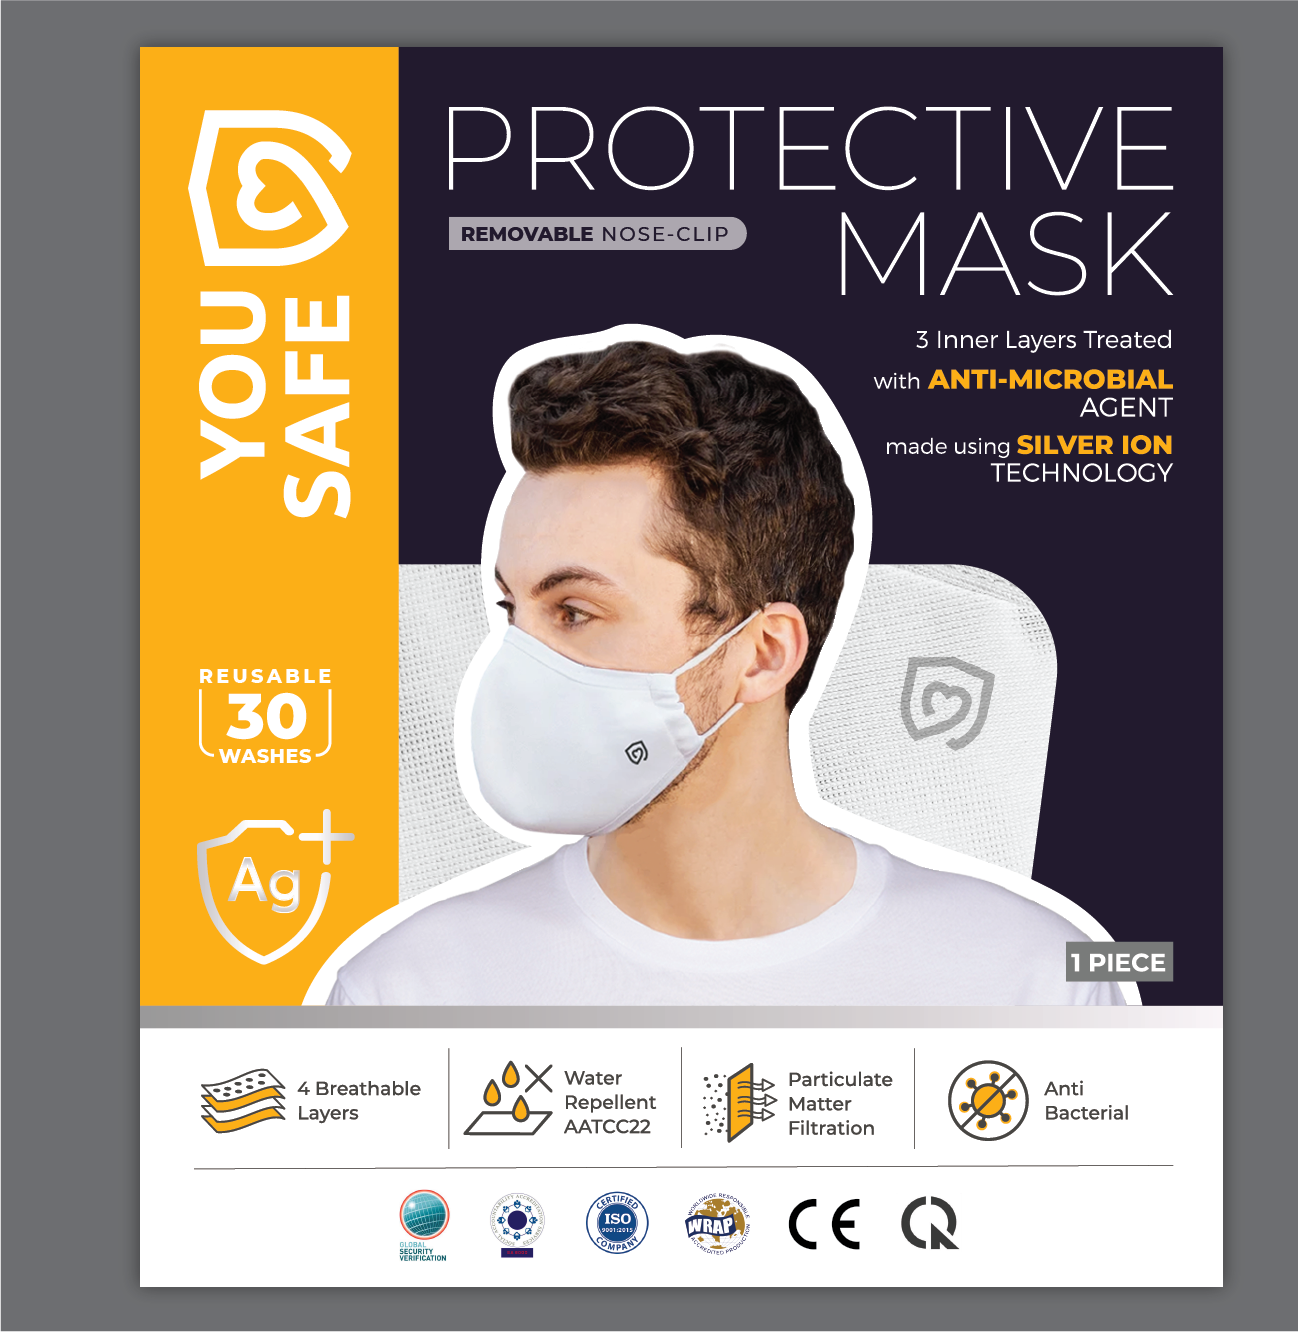 Thygesen's Protective Fabric Mask - How To Choose And Use A Mask During The Coronavirus Pandemic